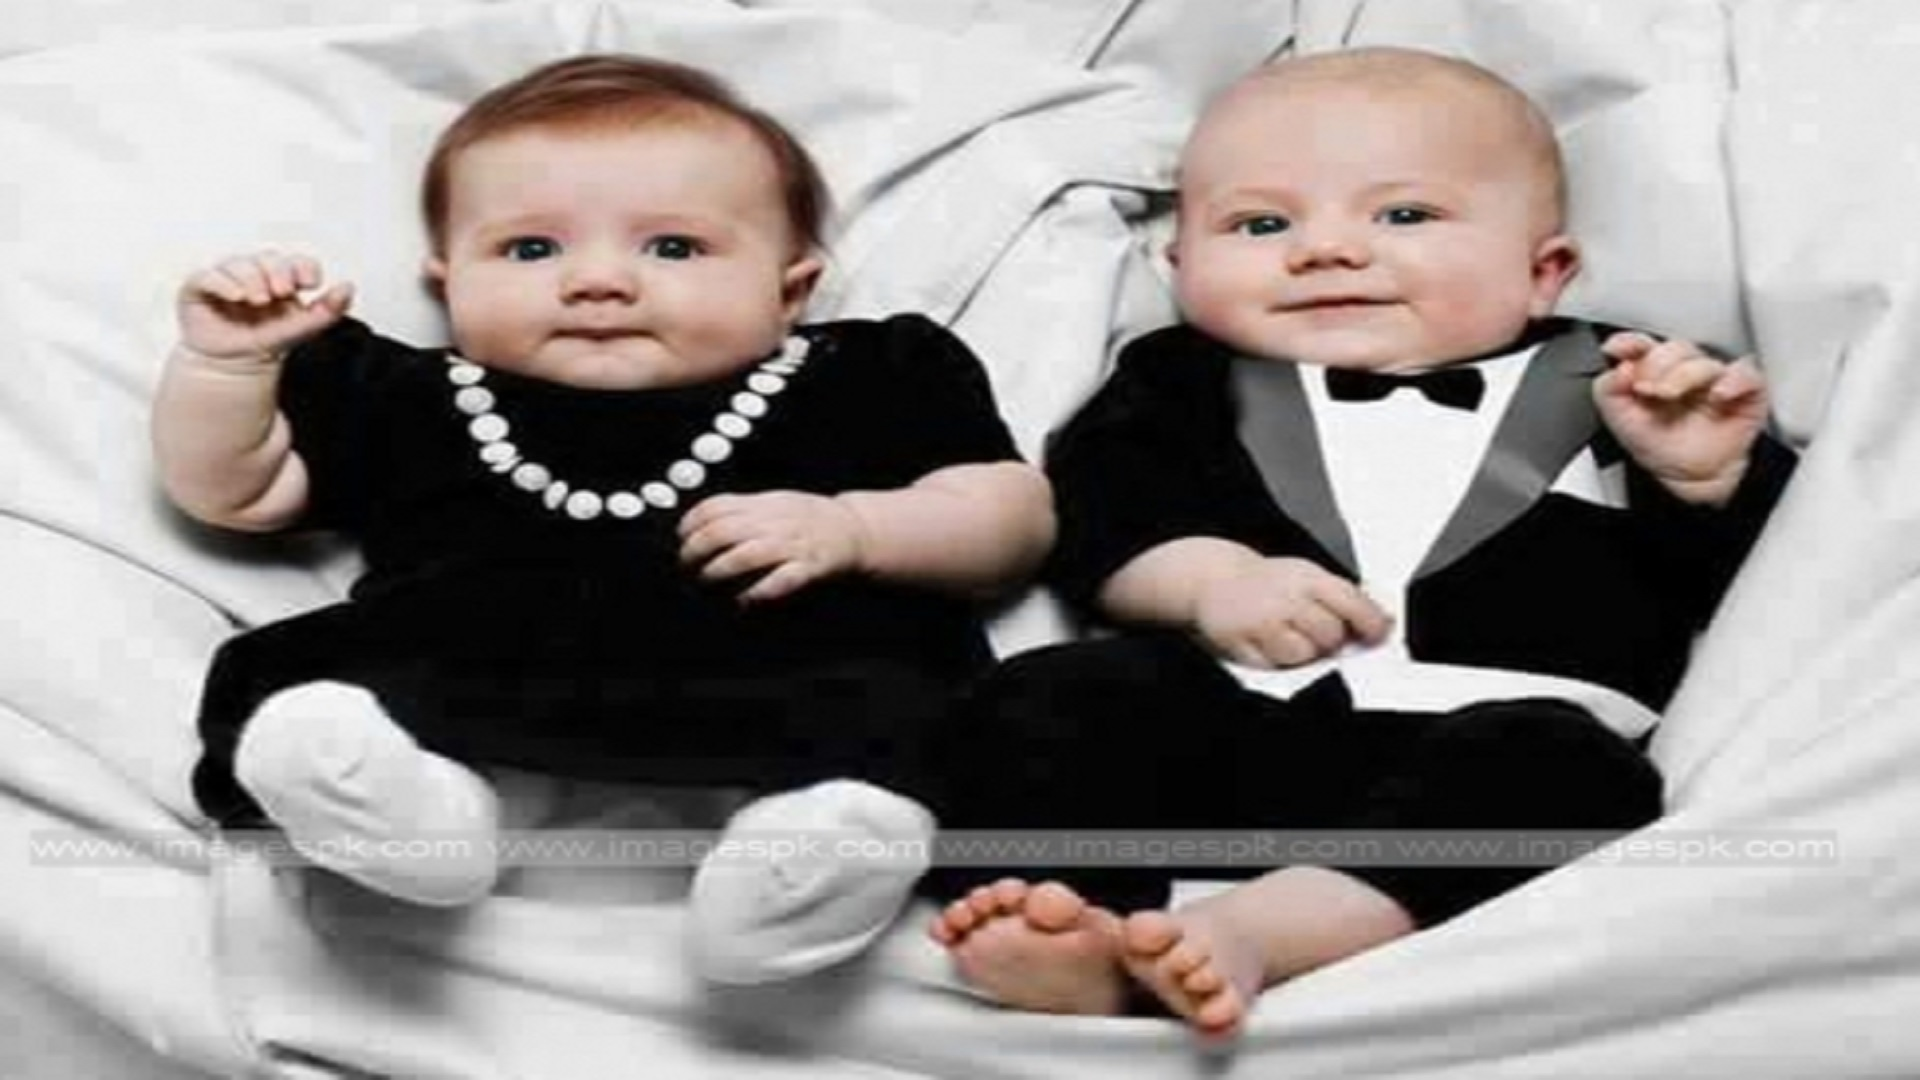 Twins Baby Boy Wallpapers